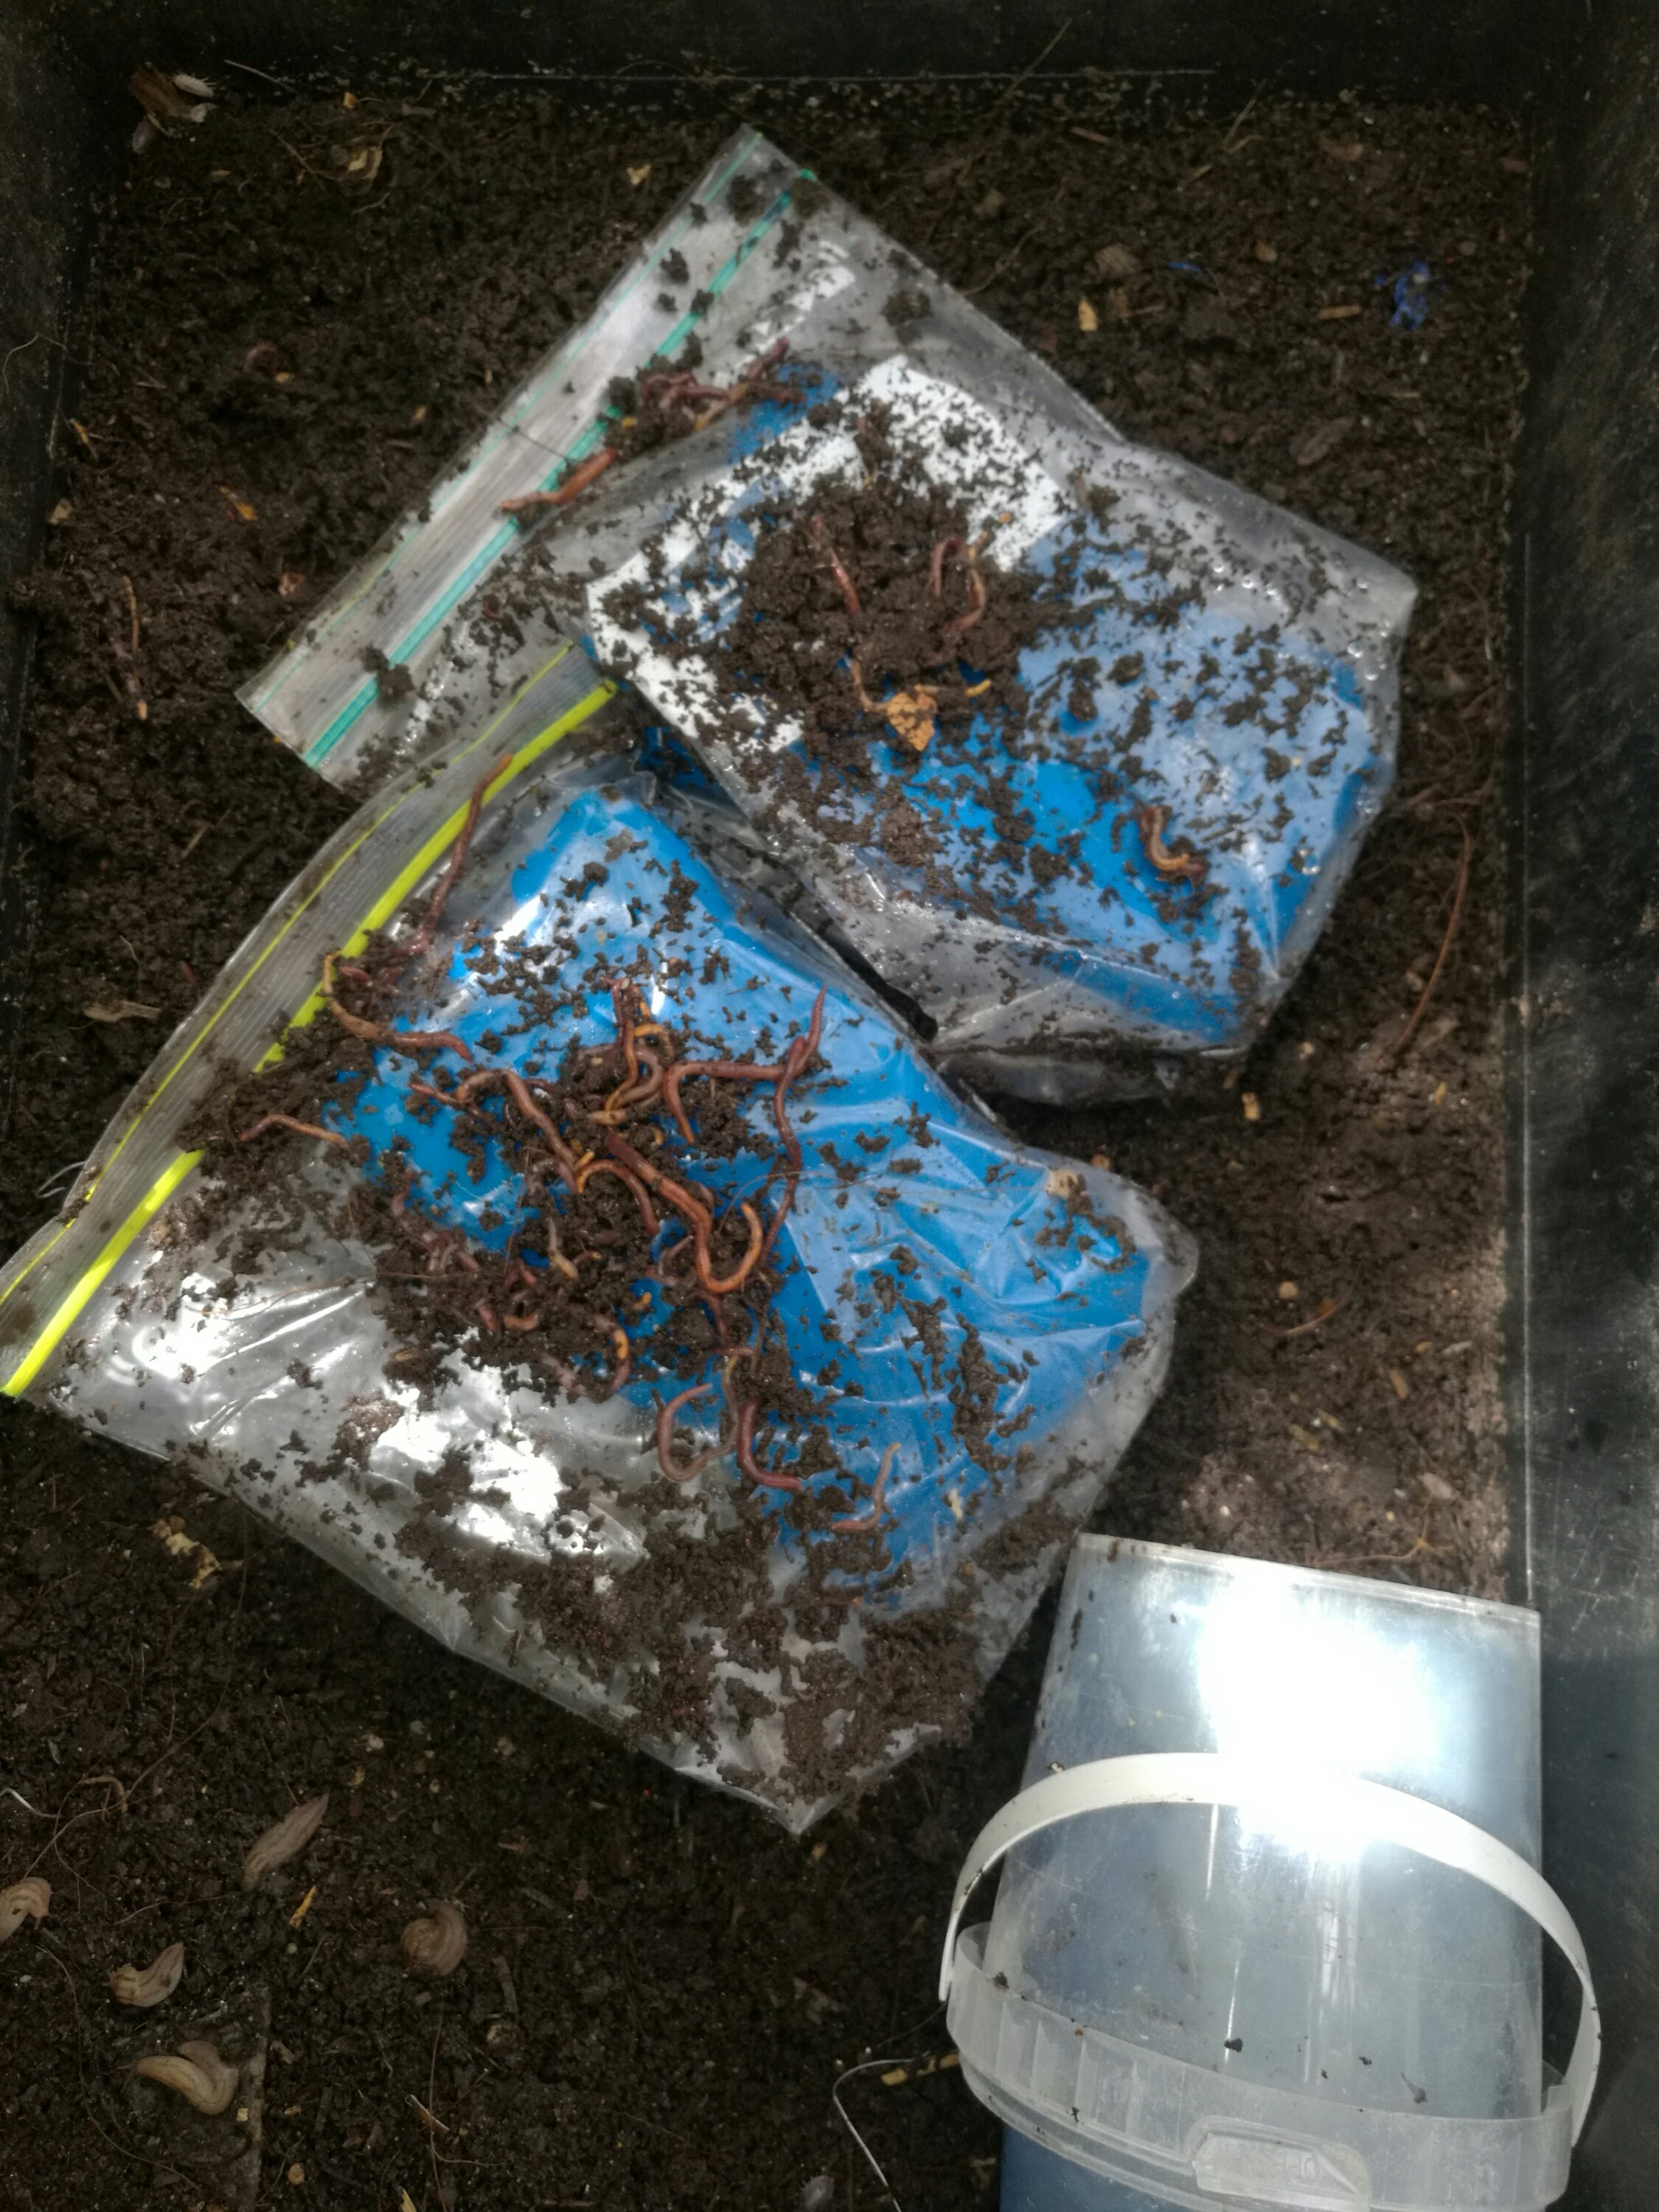 Ice packs to keep worms cool.